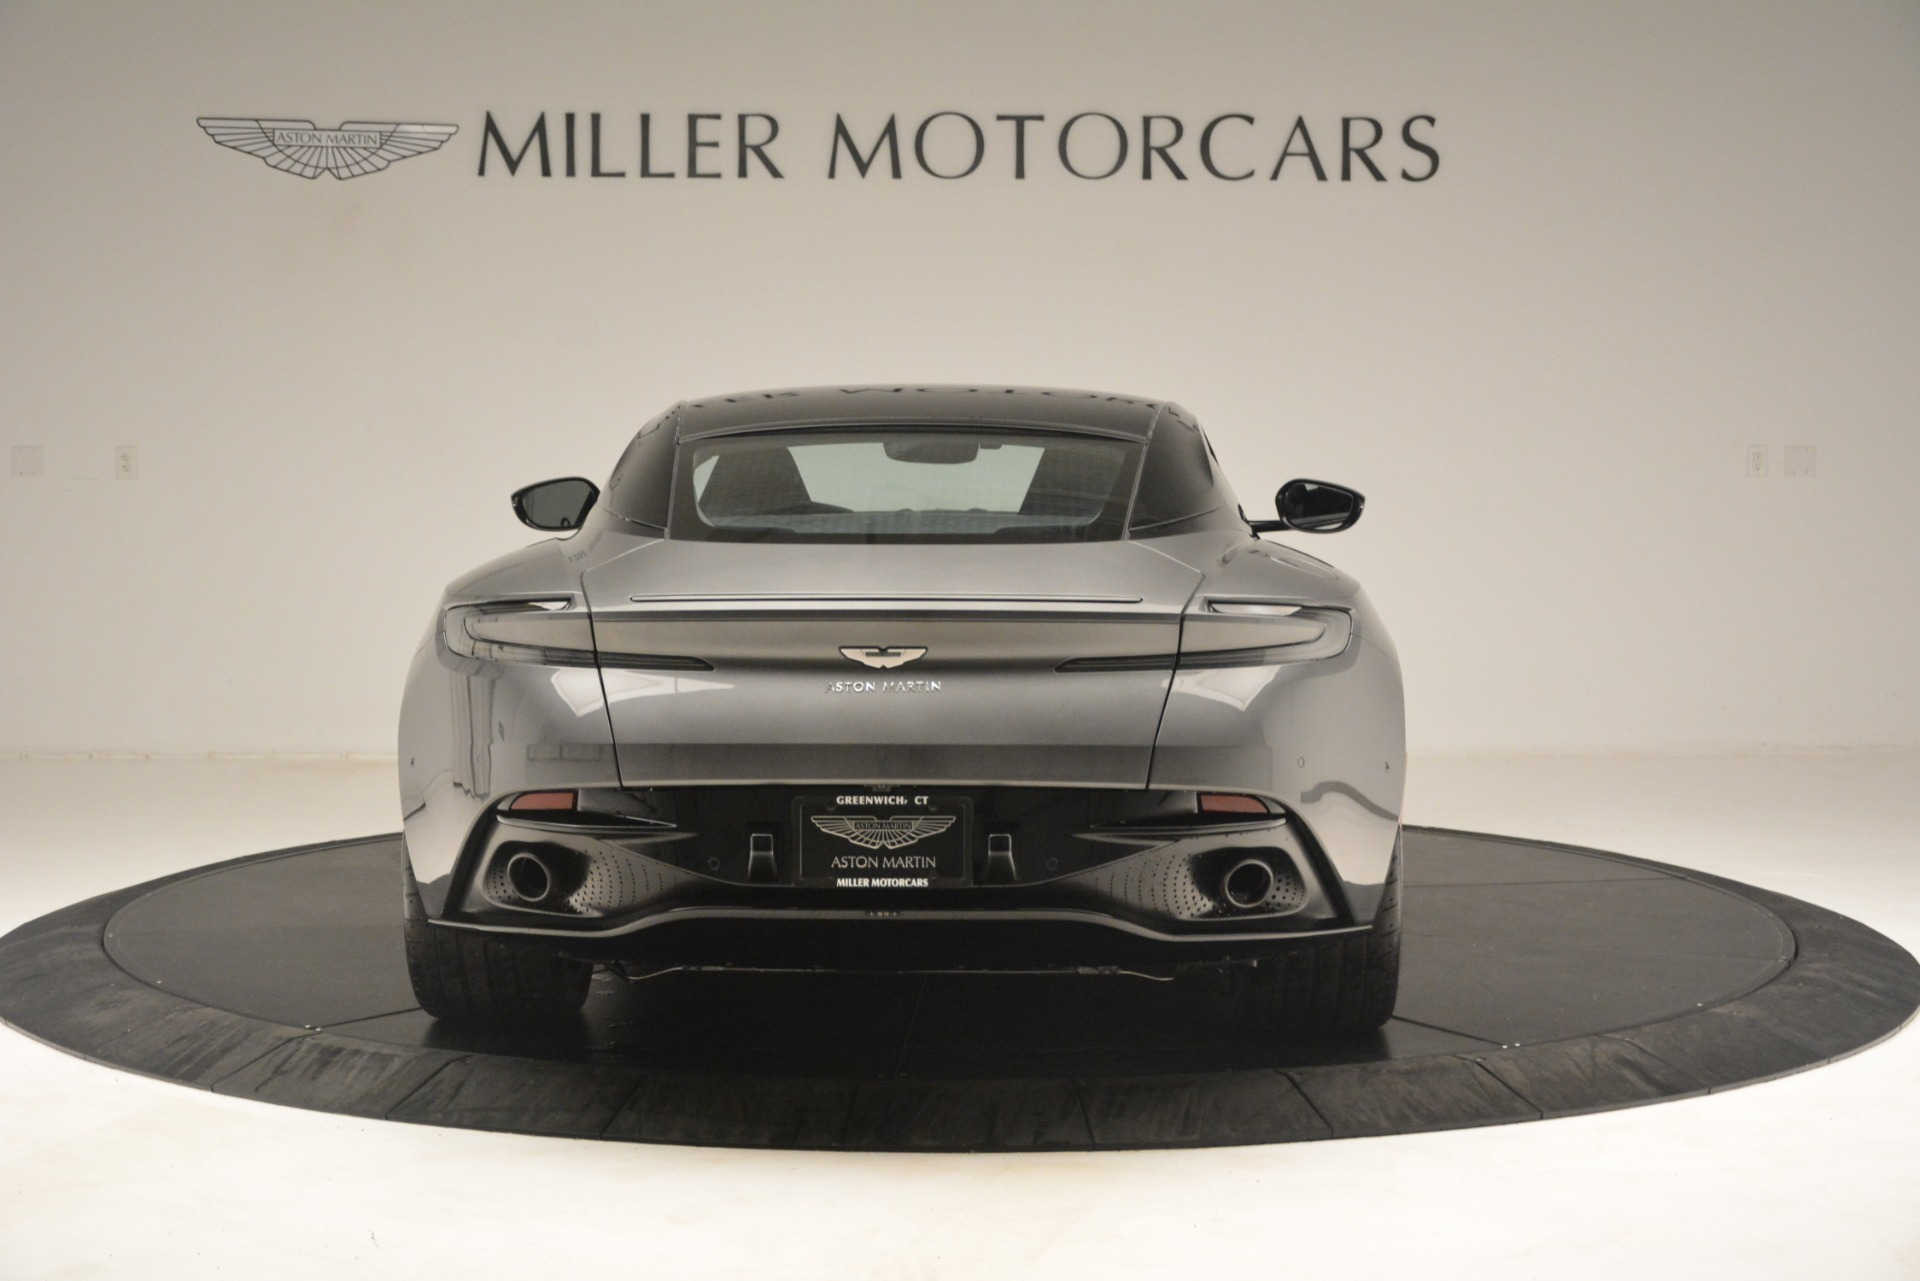 New 2019 Aston Martin DB11 V12 AMR Coupe For Sale In Greenwich, CT 3123_p6